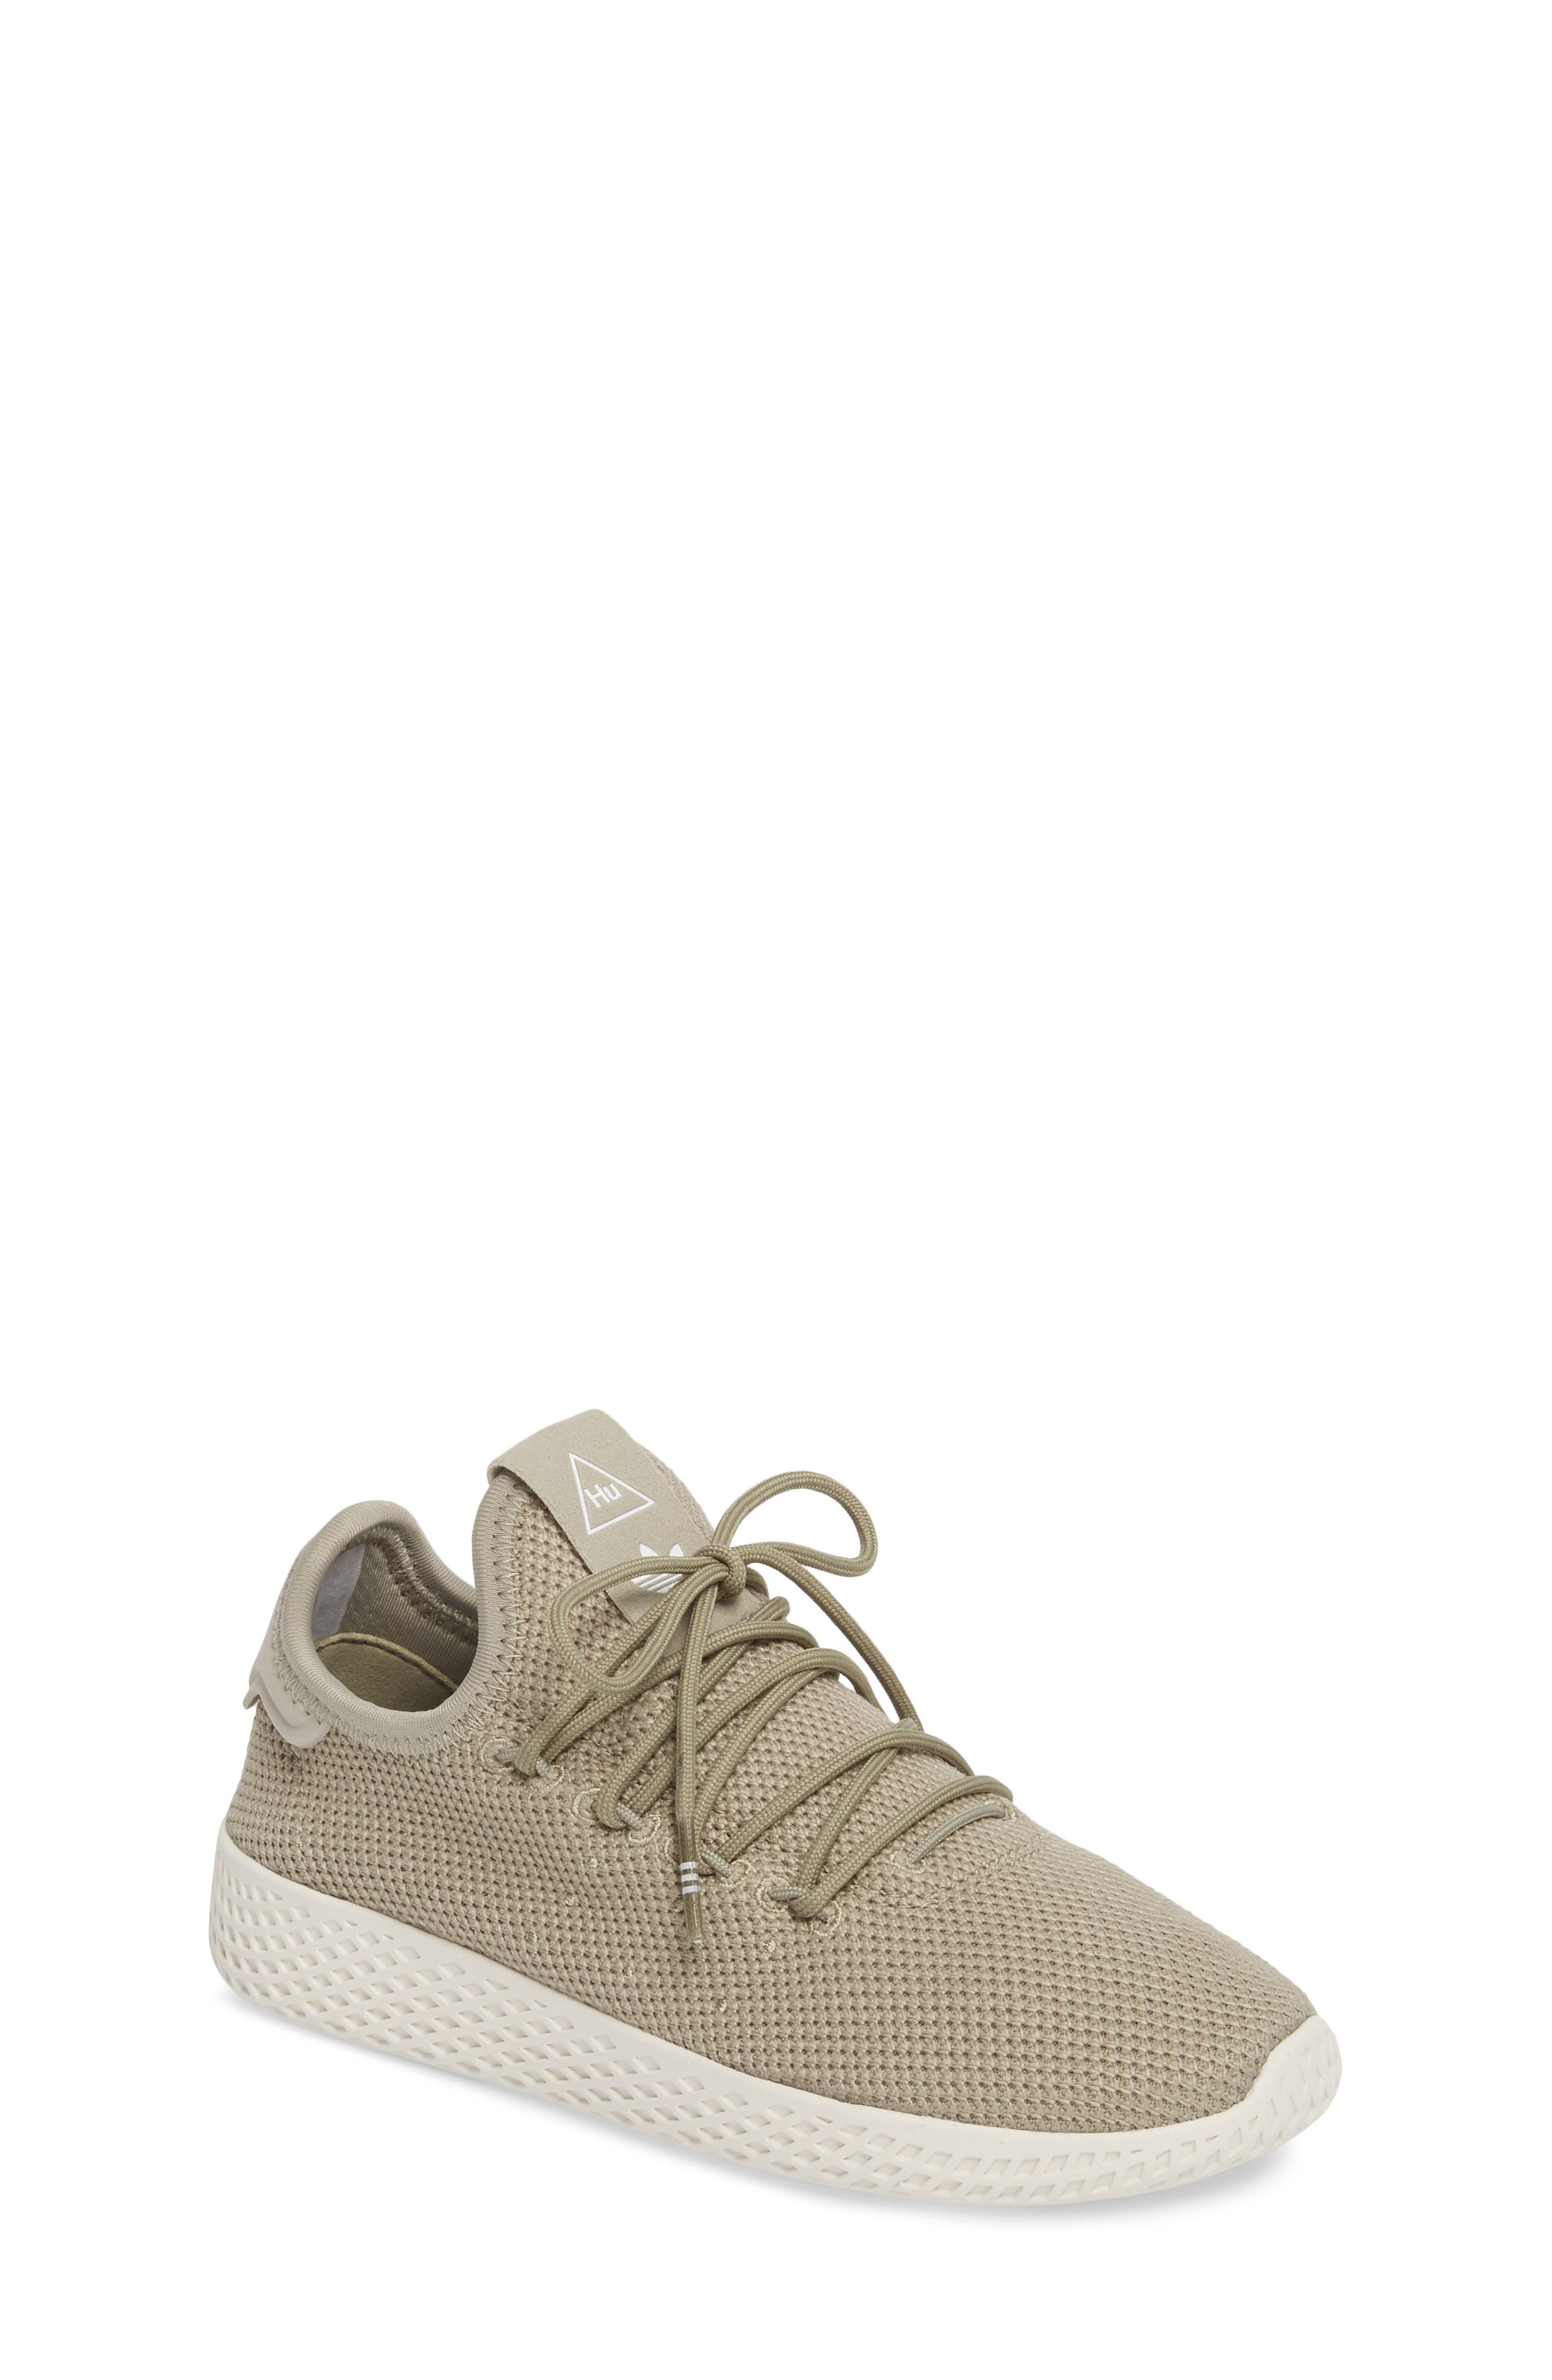 Pharrell Williams Tennis Hu Sock Sneaker,                             Main thumbnail 1, color,                             Tech Beige/ Chalk White